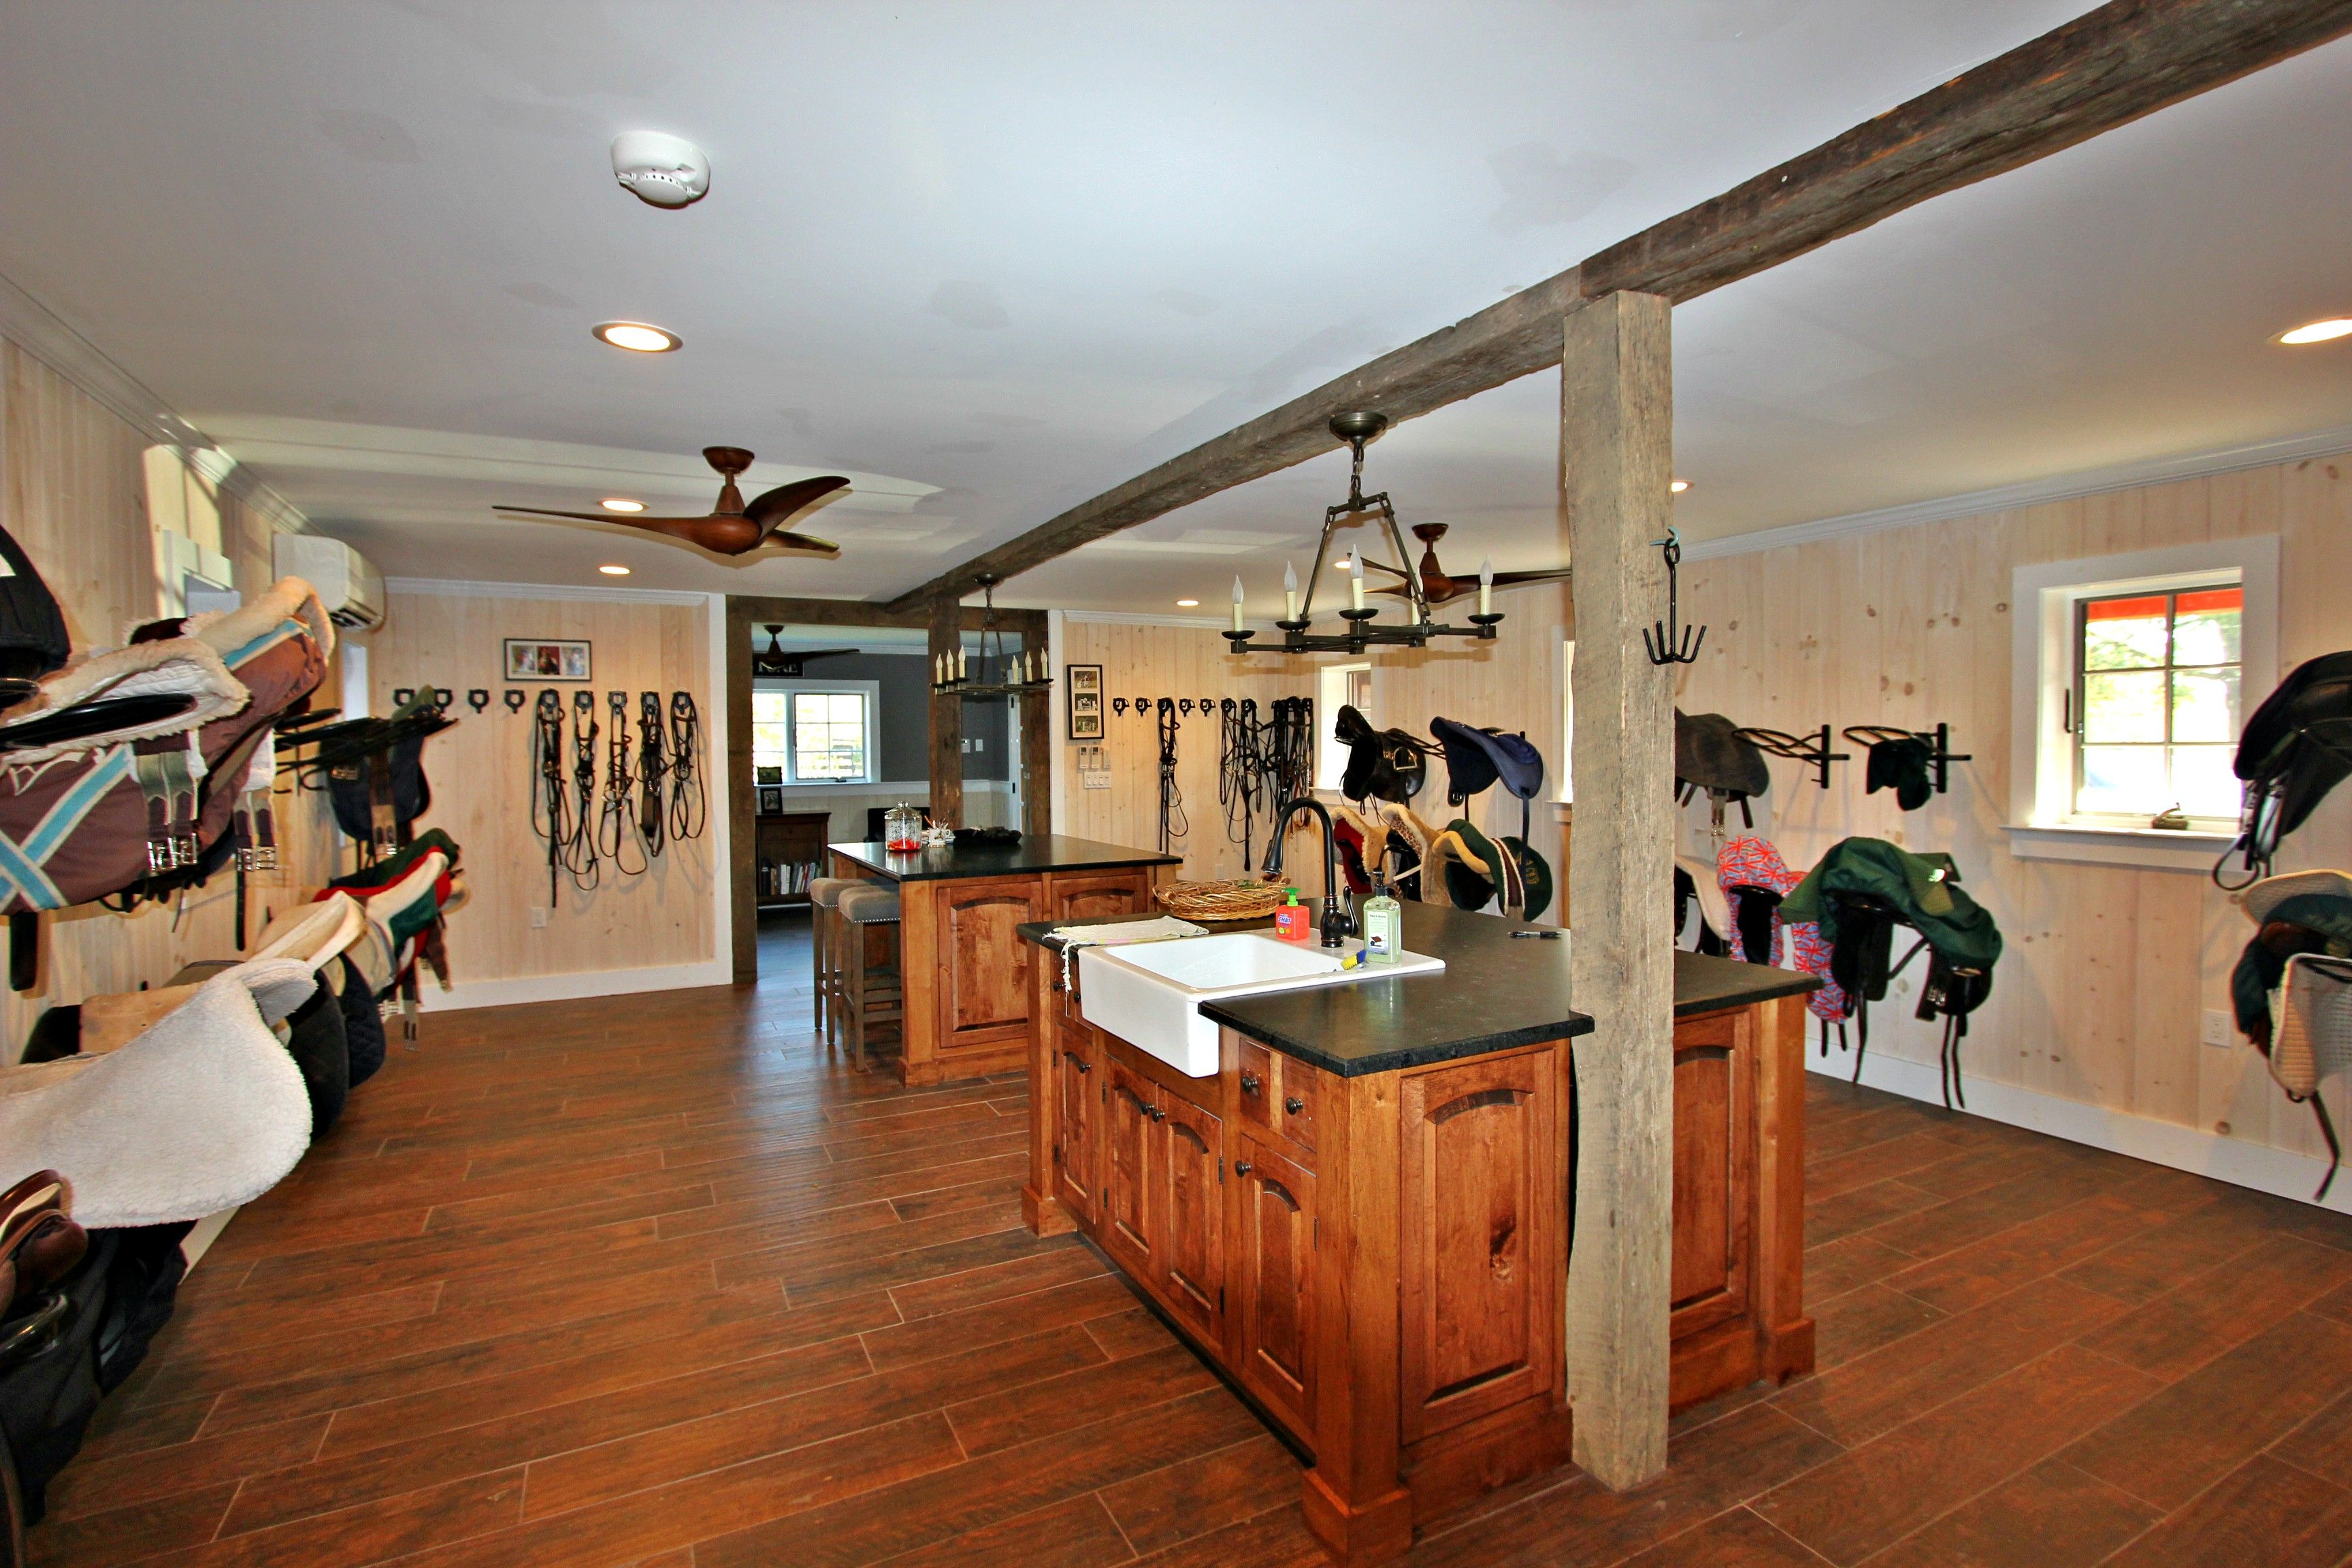 Pin by King Construction Co., LLC on Tack Rooms/Lounges ...